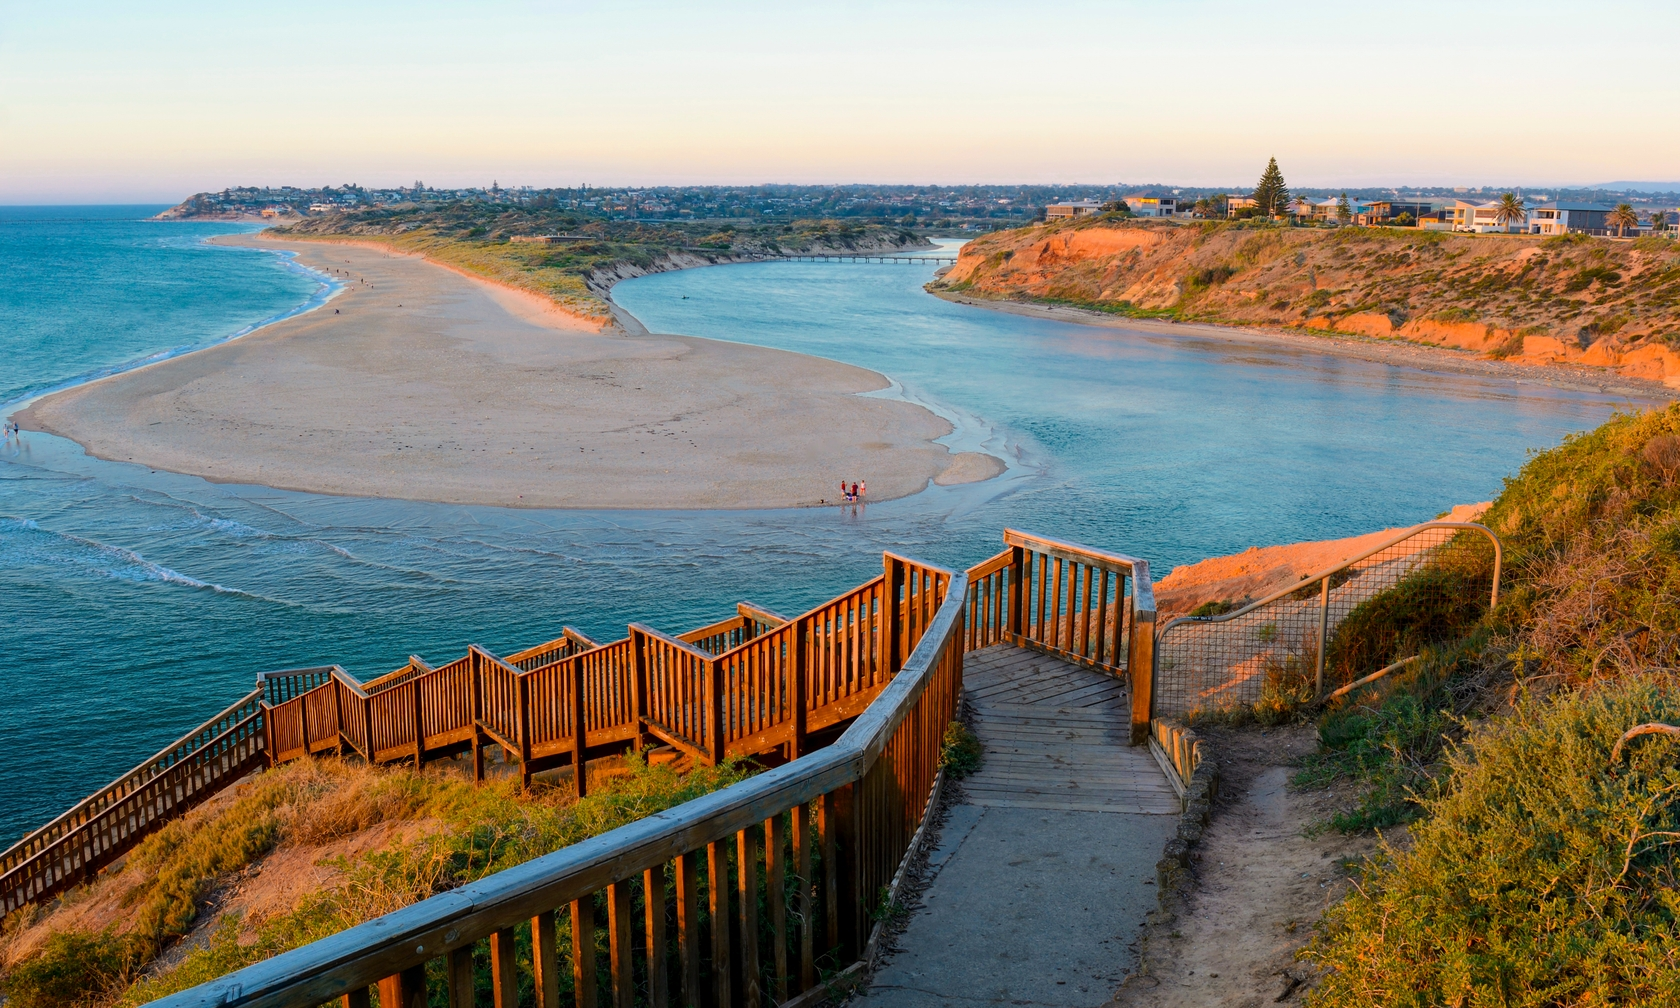 Holiday rental houses in Port Noarlunga